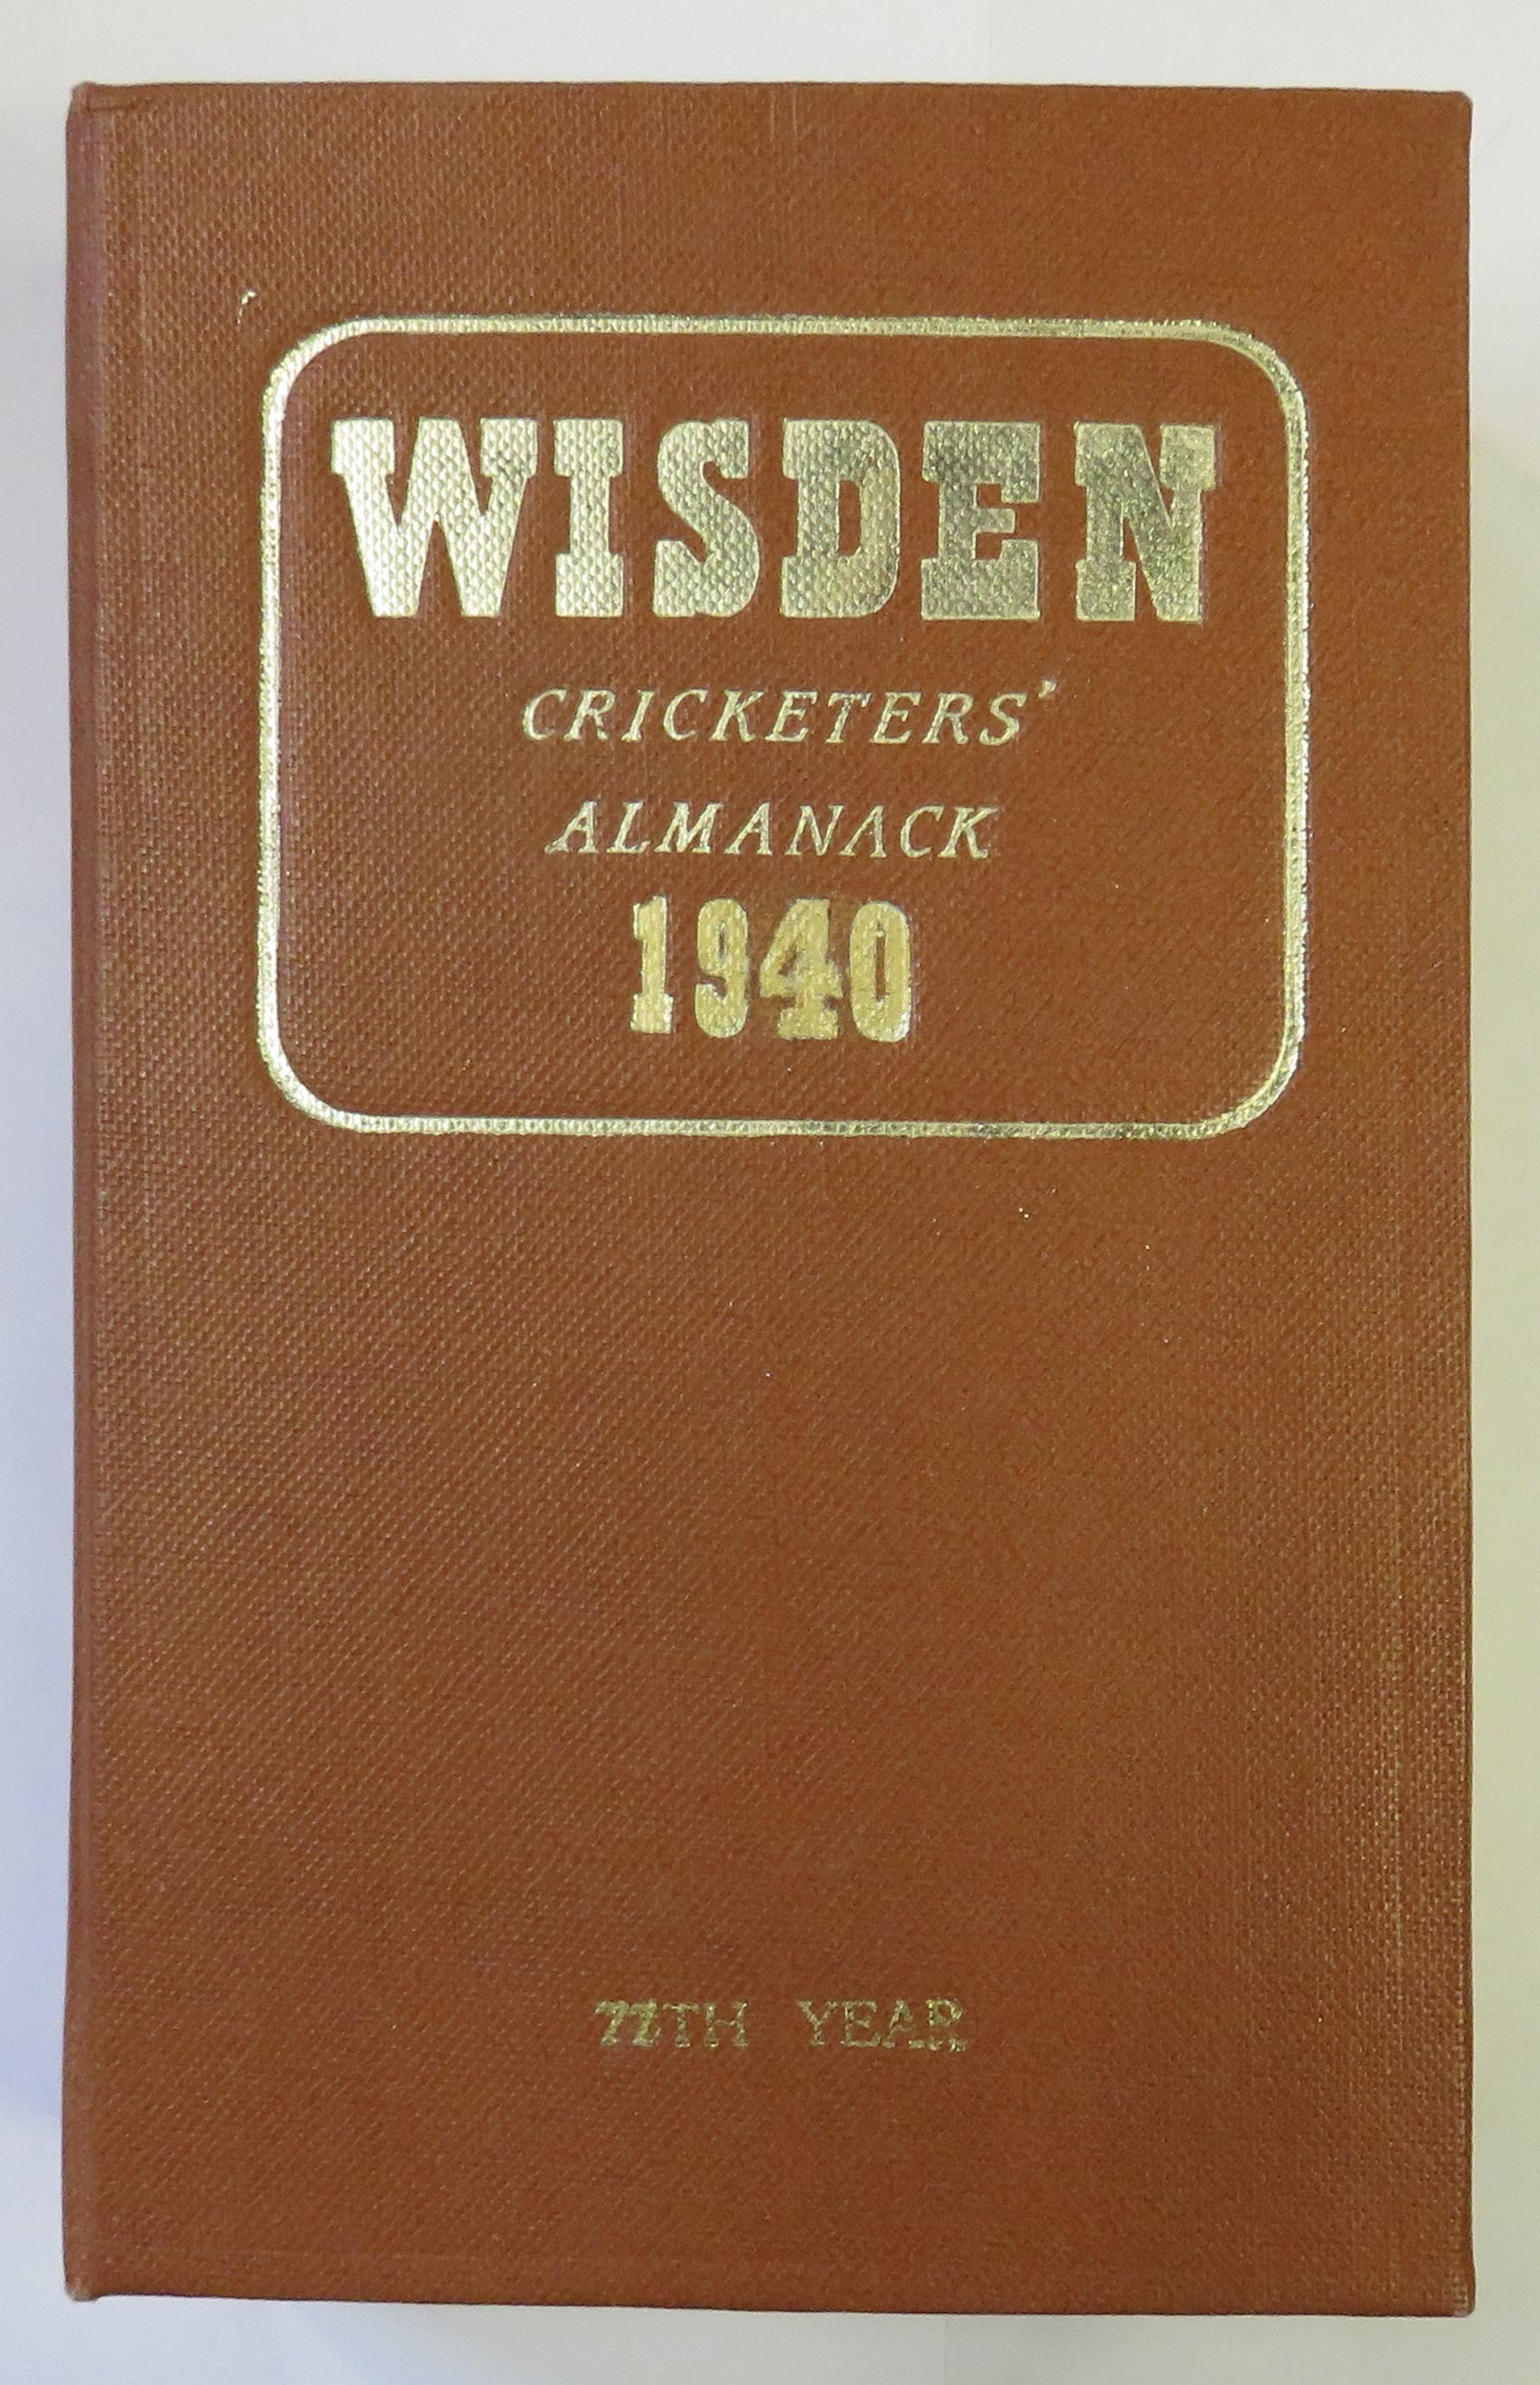 John Wisden's Cricketers' Almanack for 1940